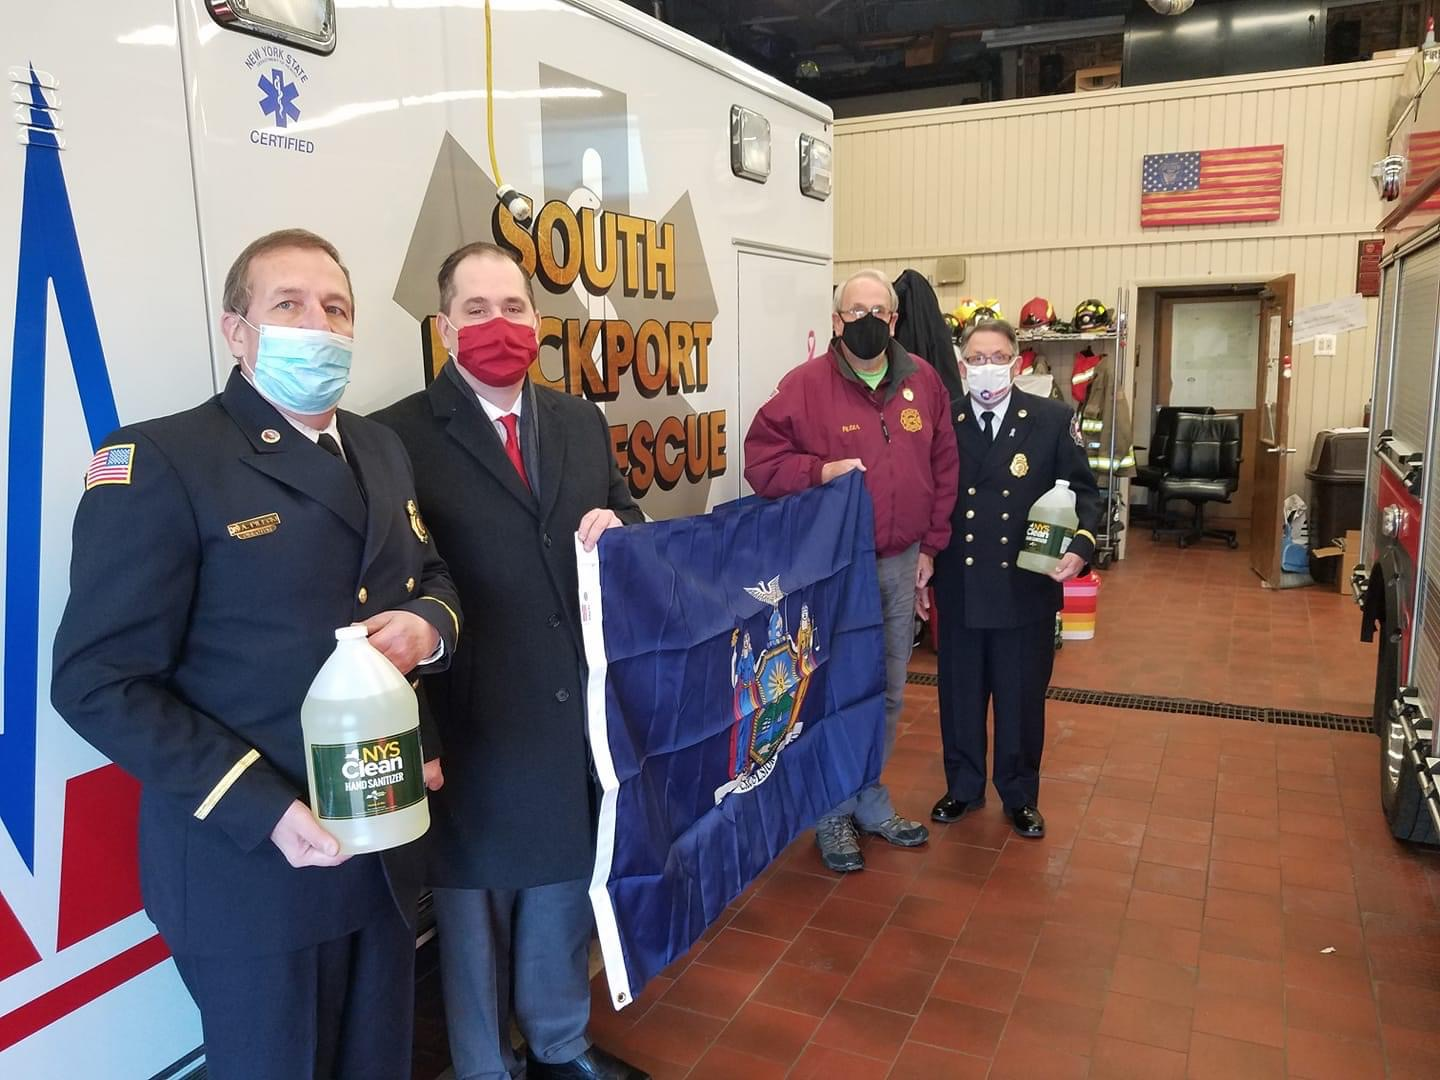 Christmas came a little early this year and I was happy to drop off some hand sanitizer and an official New York State flag to the South Lockport Volunteer Fire Company. Thank you to the Firemen's Ass